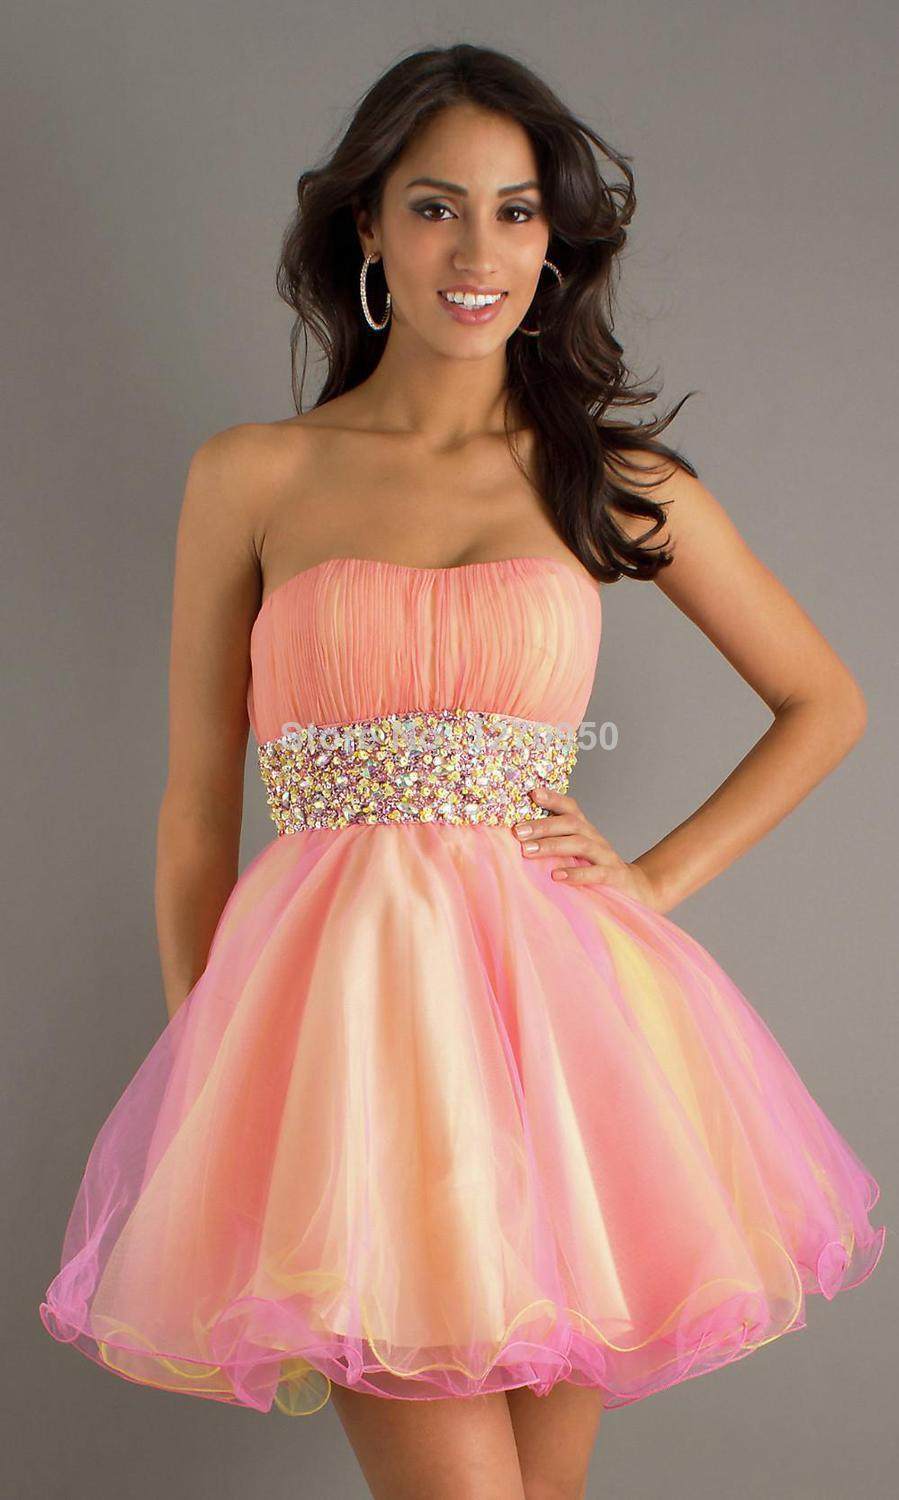 Ruched-Sweetheart-Beading-Waistline-Cheap-Rainbow-Homecoming-Dresses-2014- Homecoming-Cocktail-Dresses.jpg